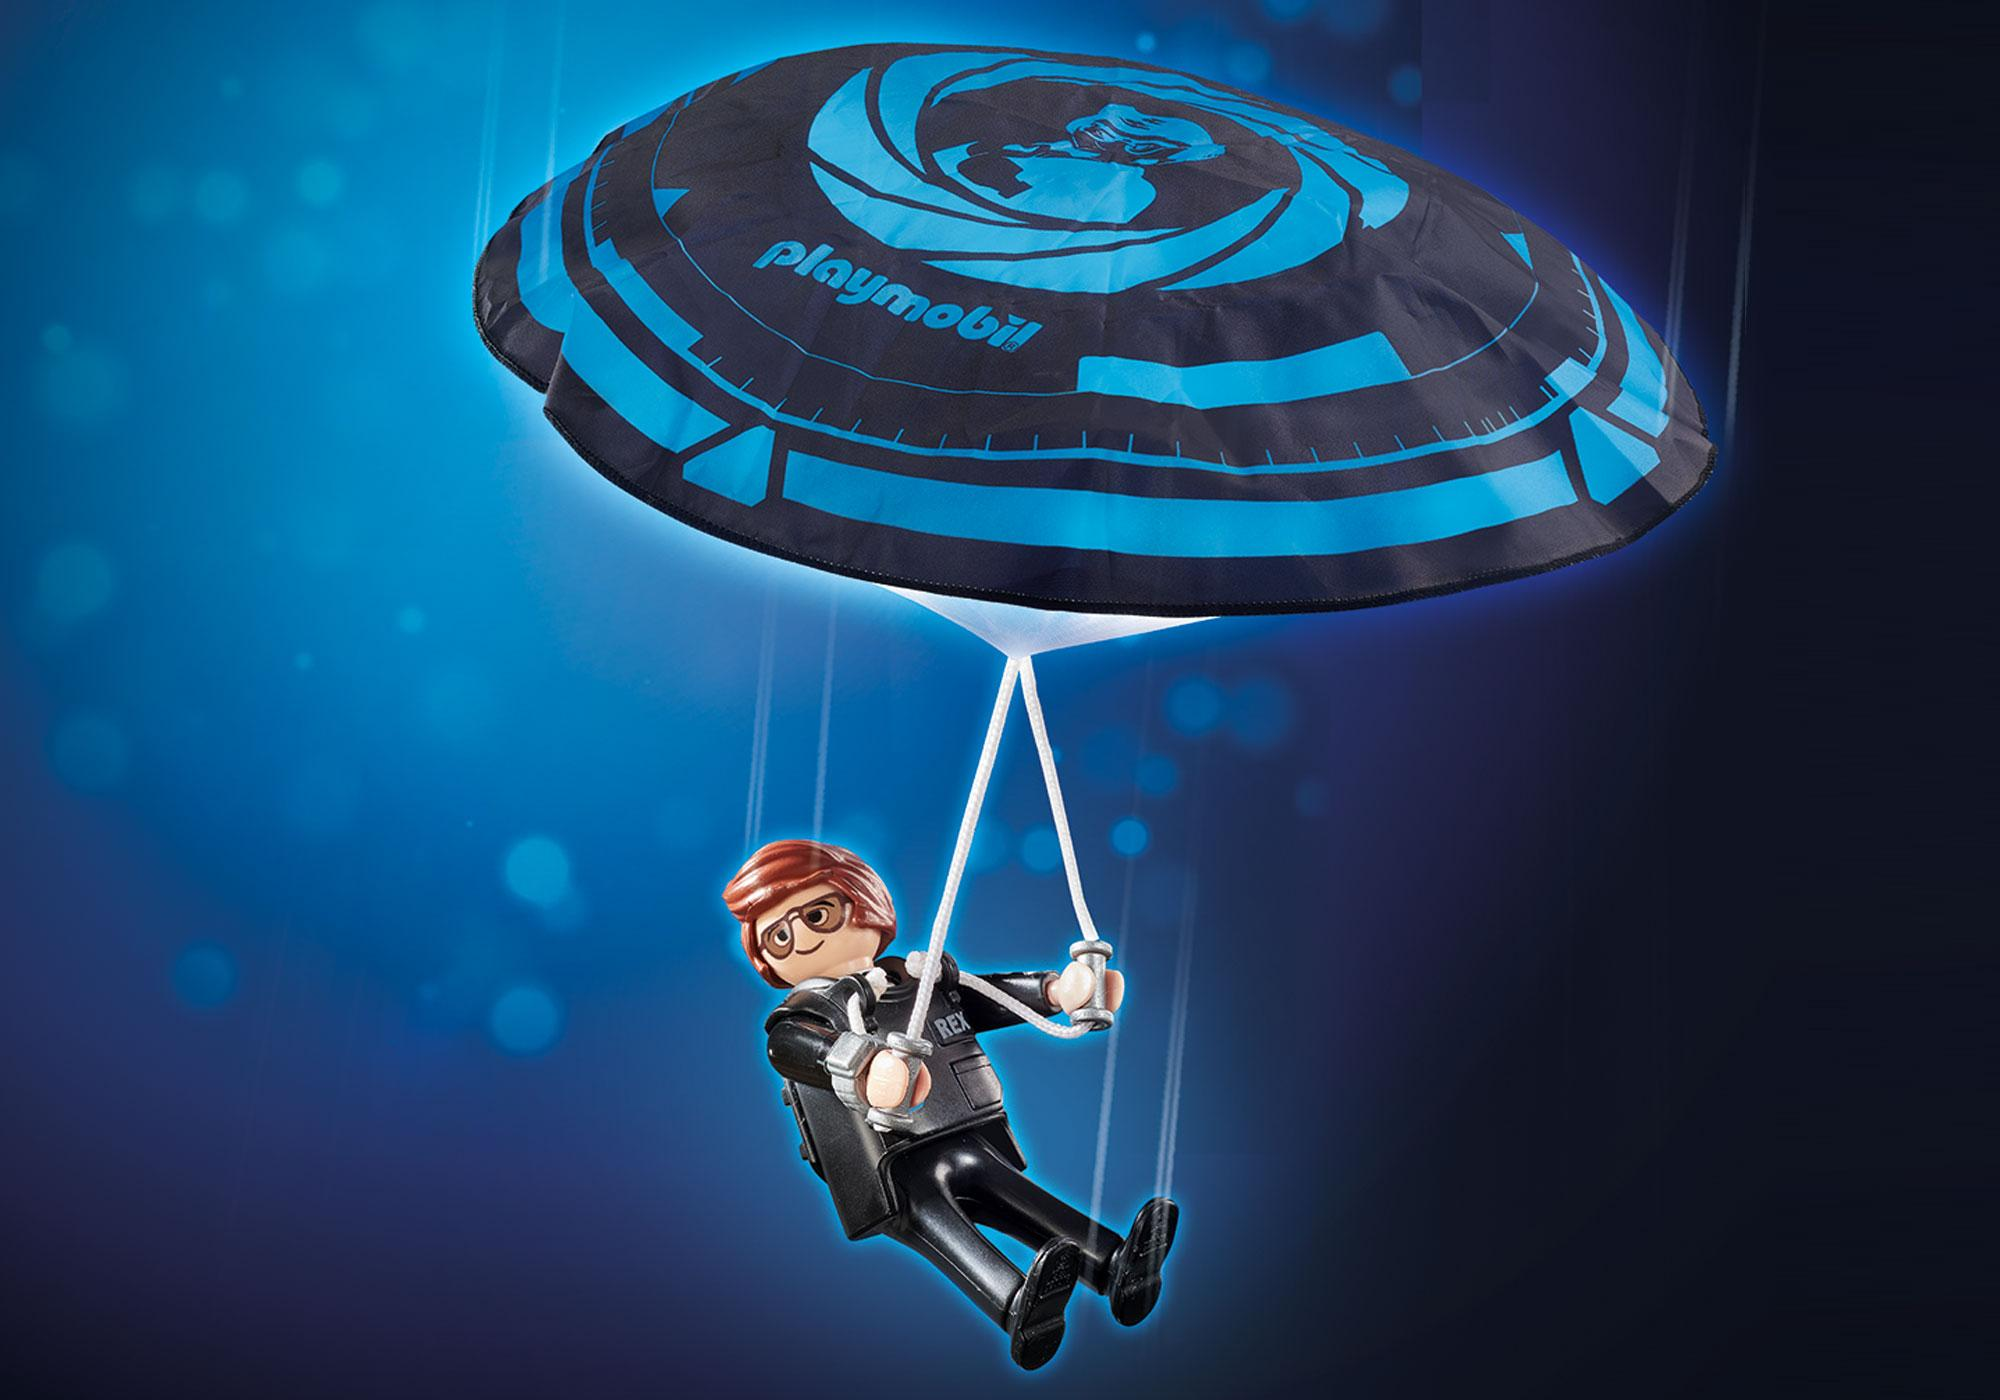 70070_product_detail/PLAYMOBIL: THE MOVIE Rex Dasher avec parachute